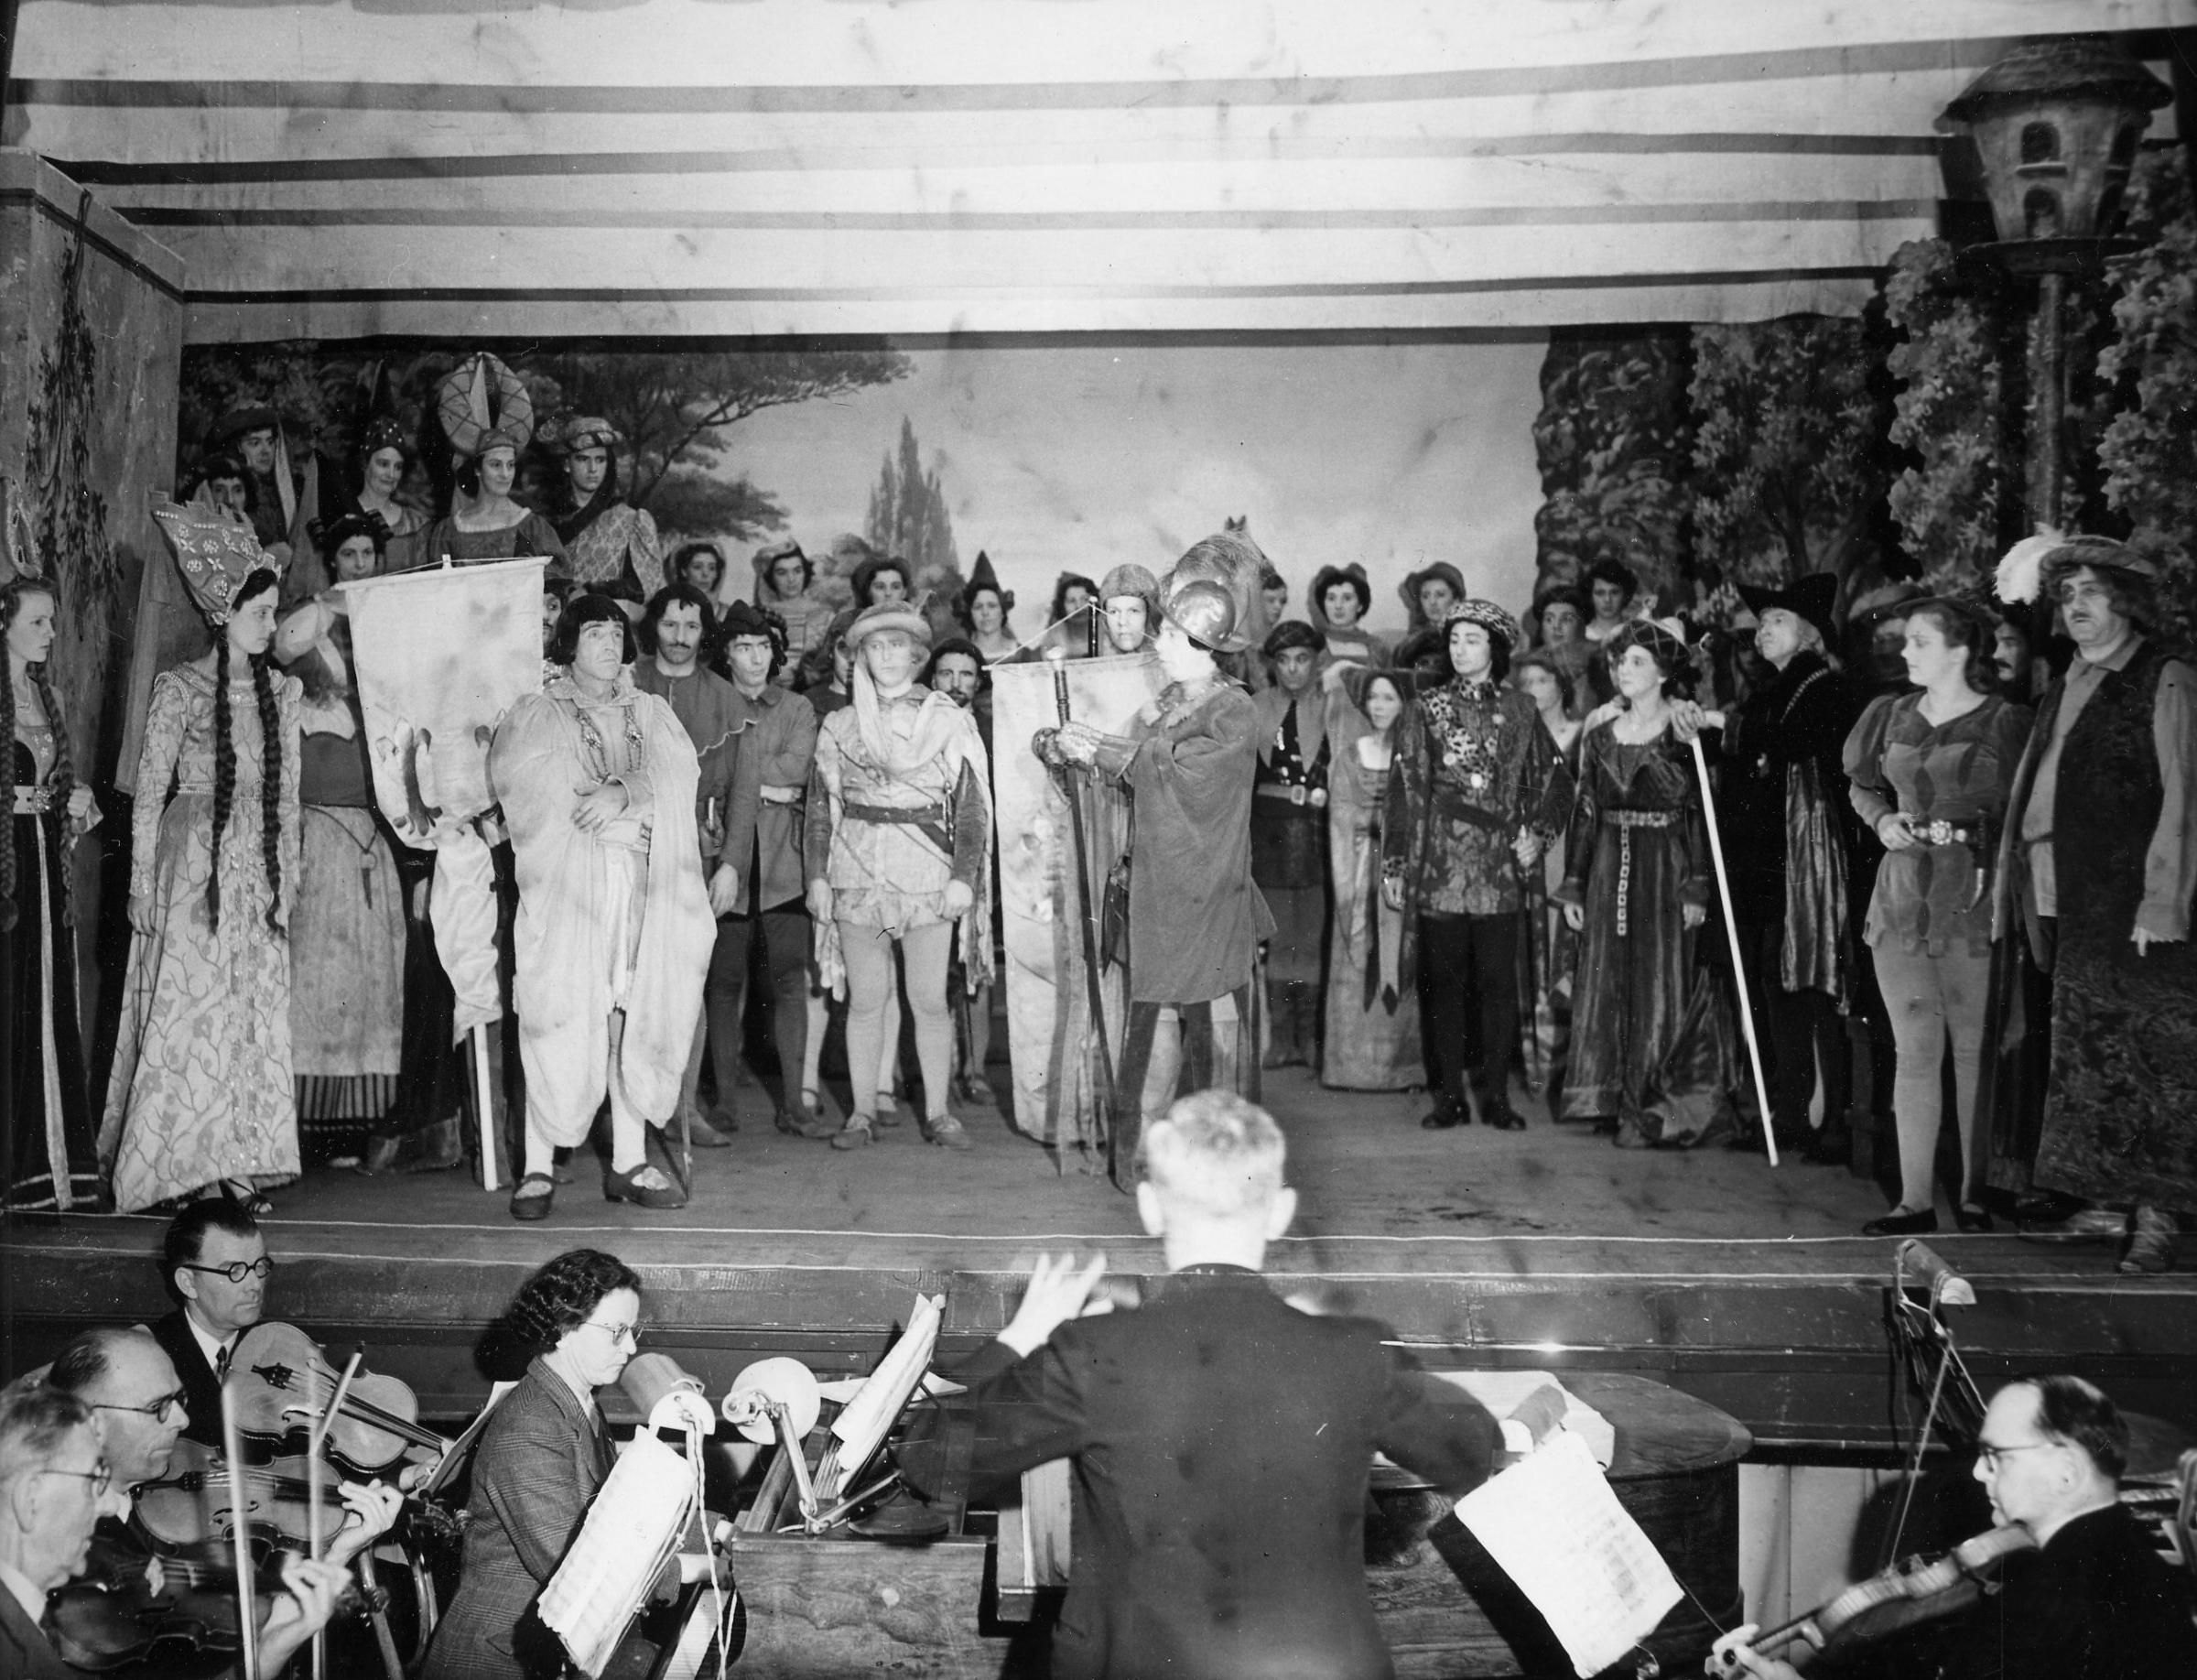 Chepstow 